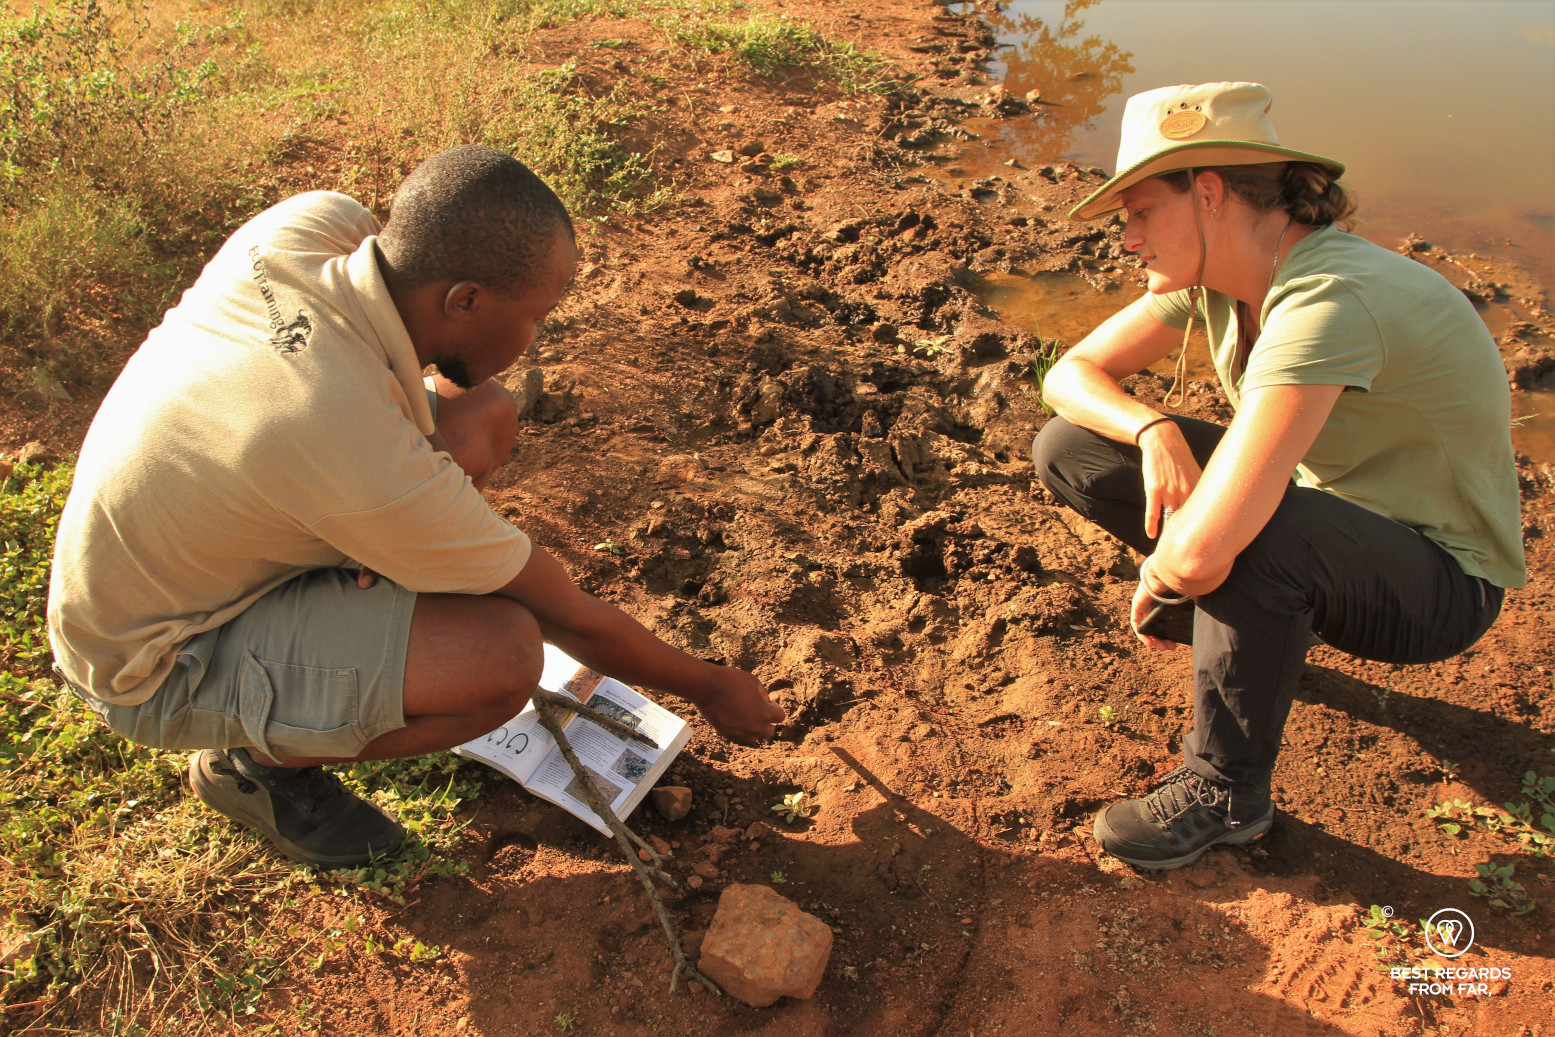 EcoTracker instructor Norman Chauke analizing a zebra track in the red mud with a student